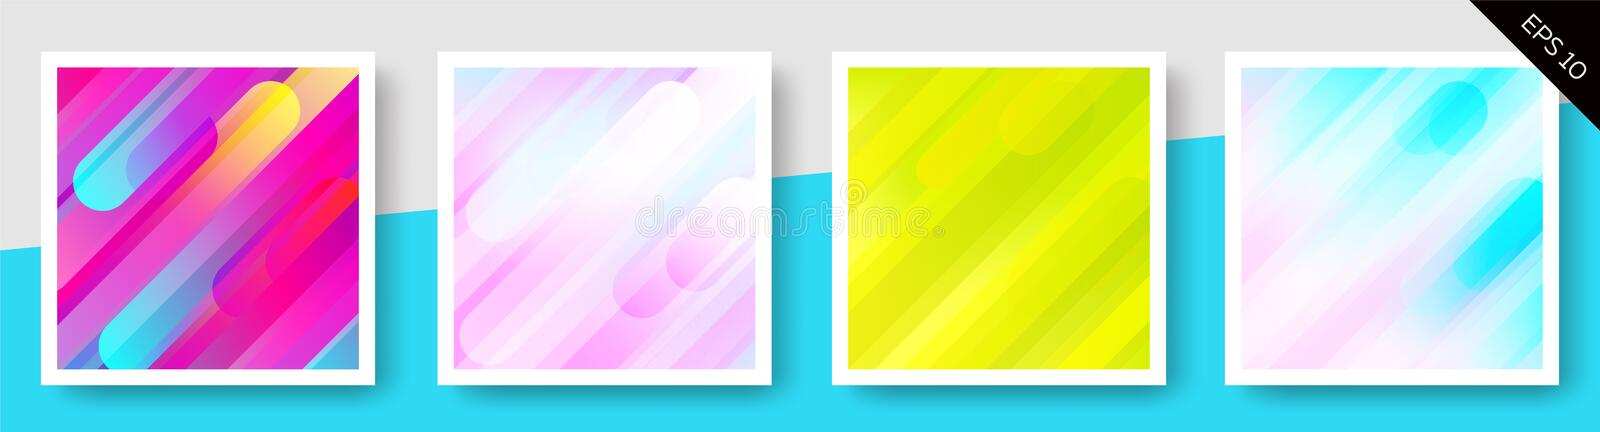 Set of abstract backgrounds. Illustrated set of colorful abstract backgrounds stock illustration